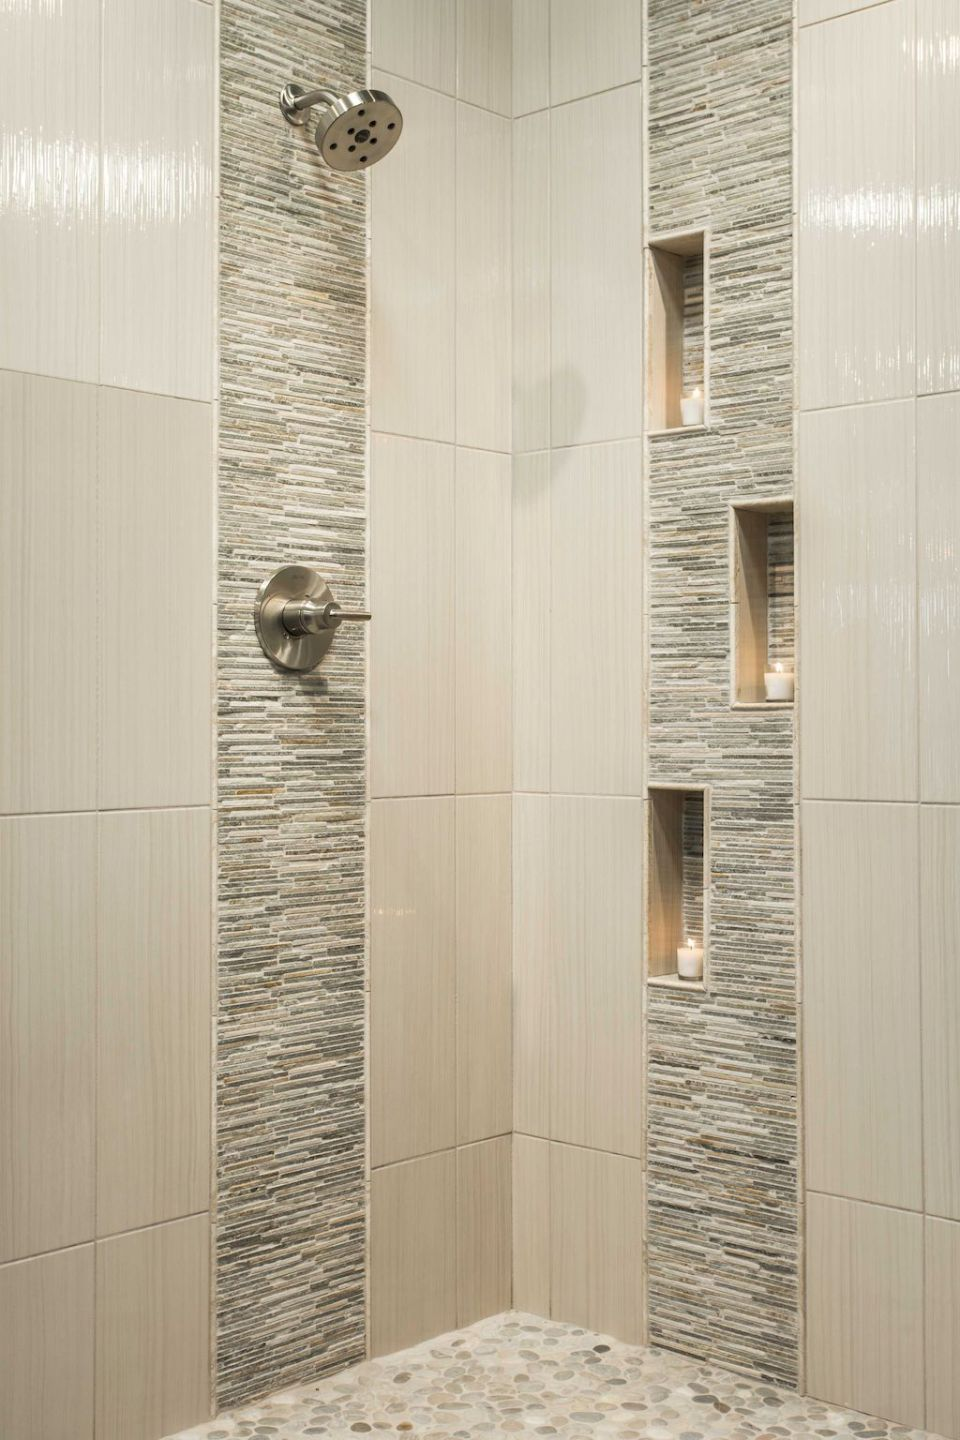 80 Stunning Tile Shower Designs Ideas For Bathroom Remodel 40